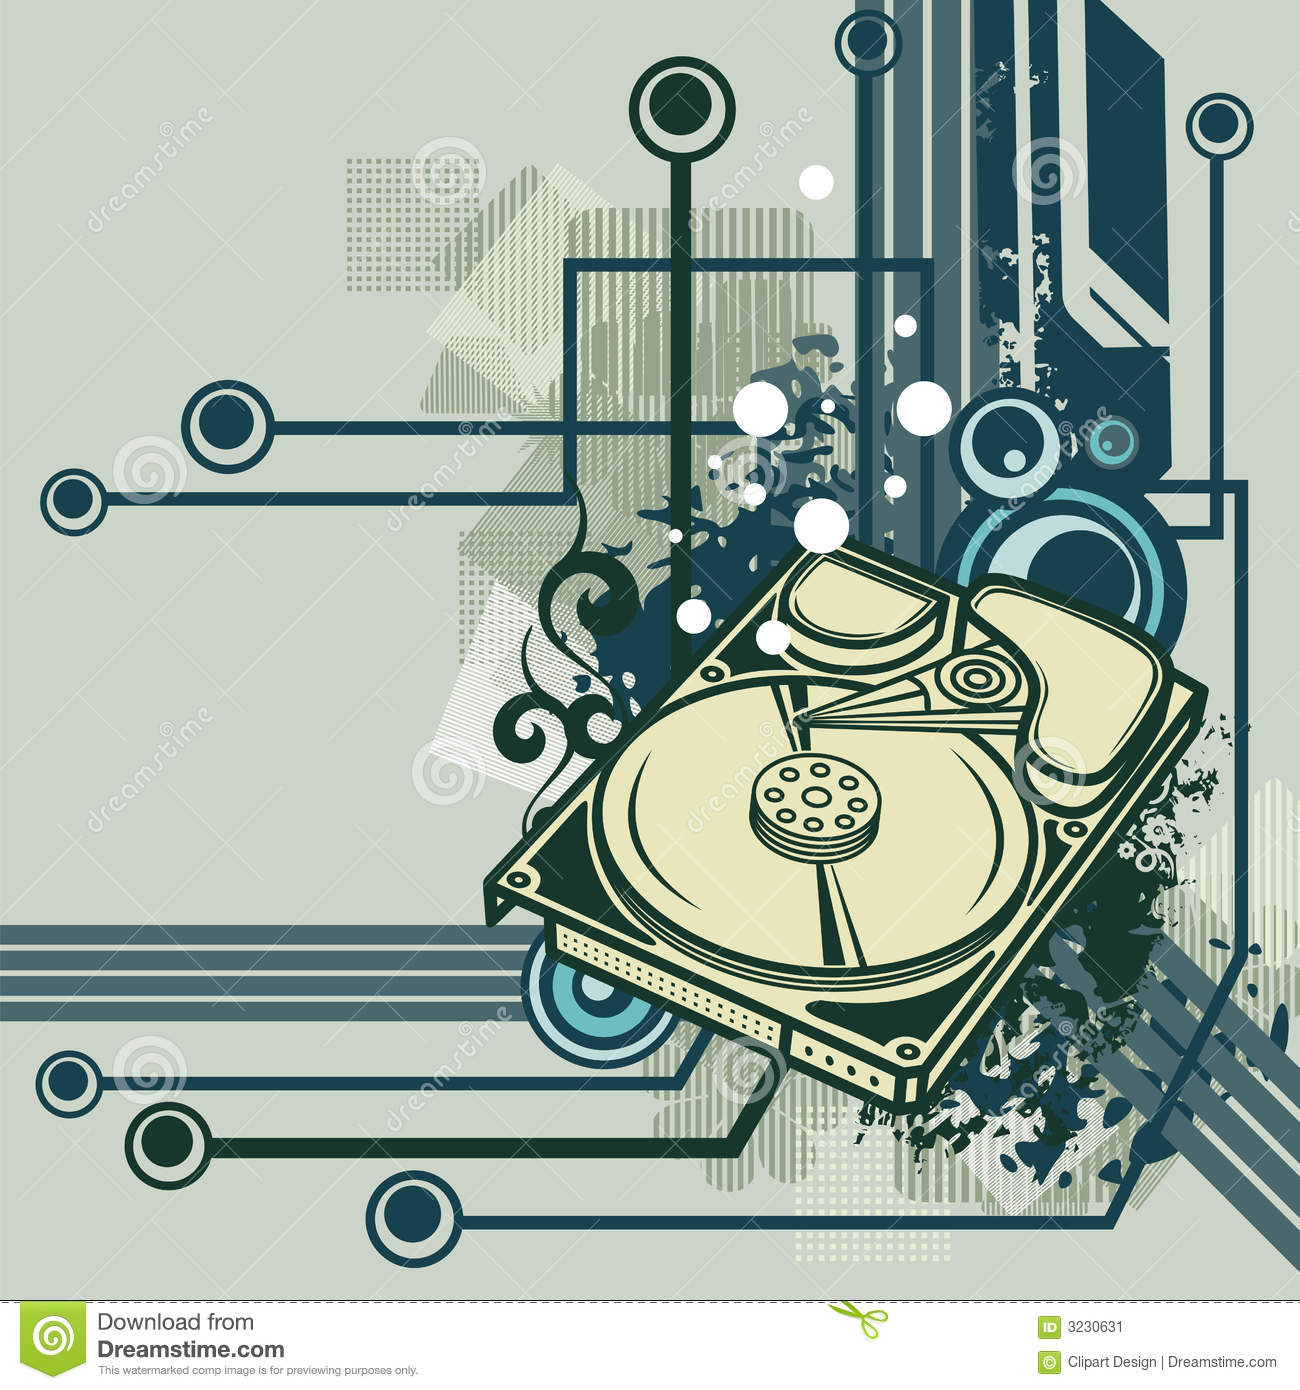 Computer background series stock vector. Illustration of connect.